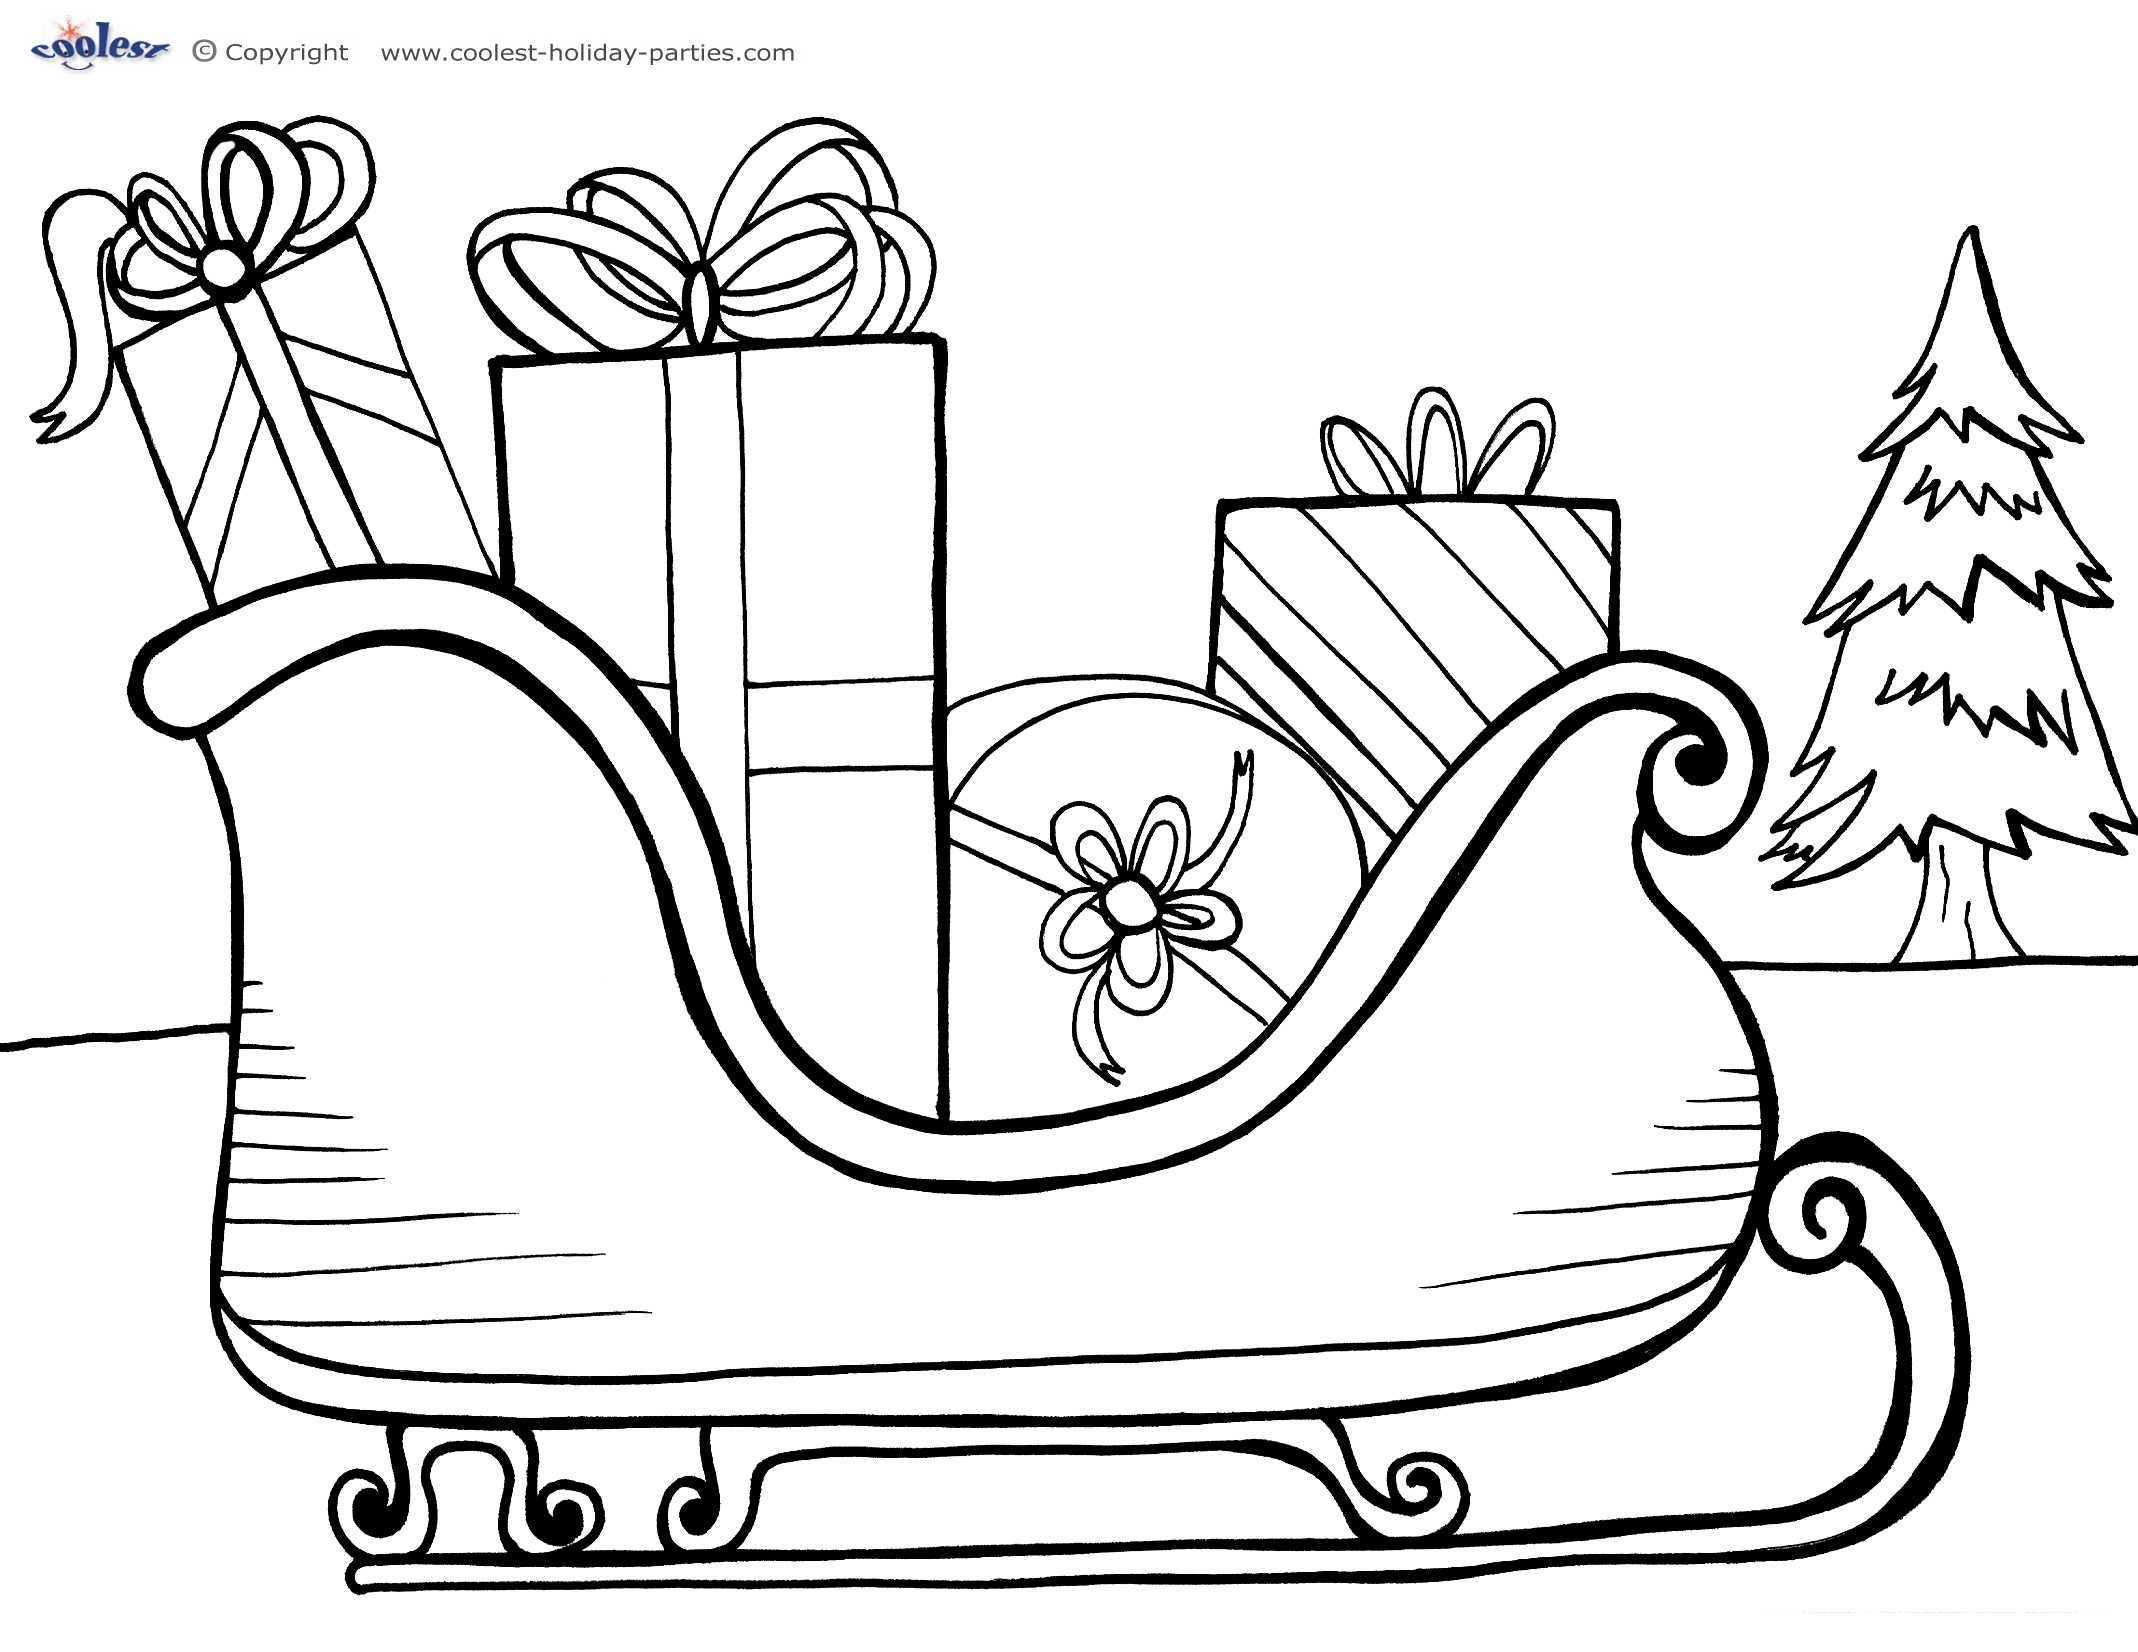 merry christmas signs coloring pages - photo#7